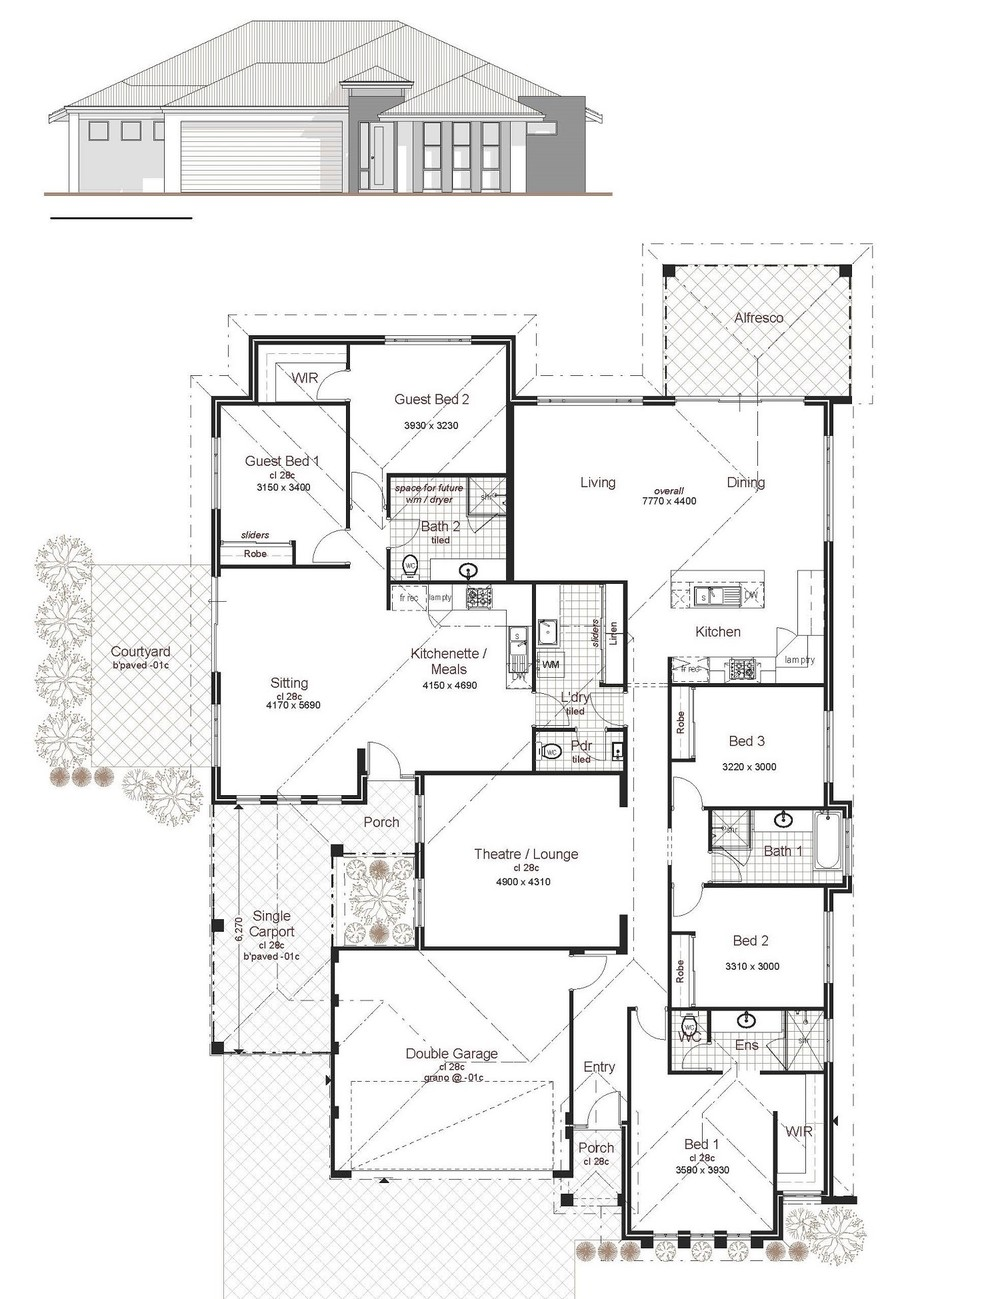 Elegant 207 Dual Living Custom Design Perth Two Family